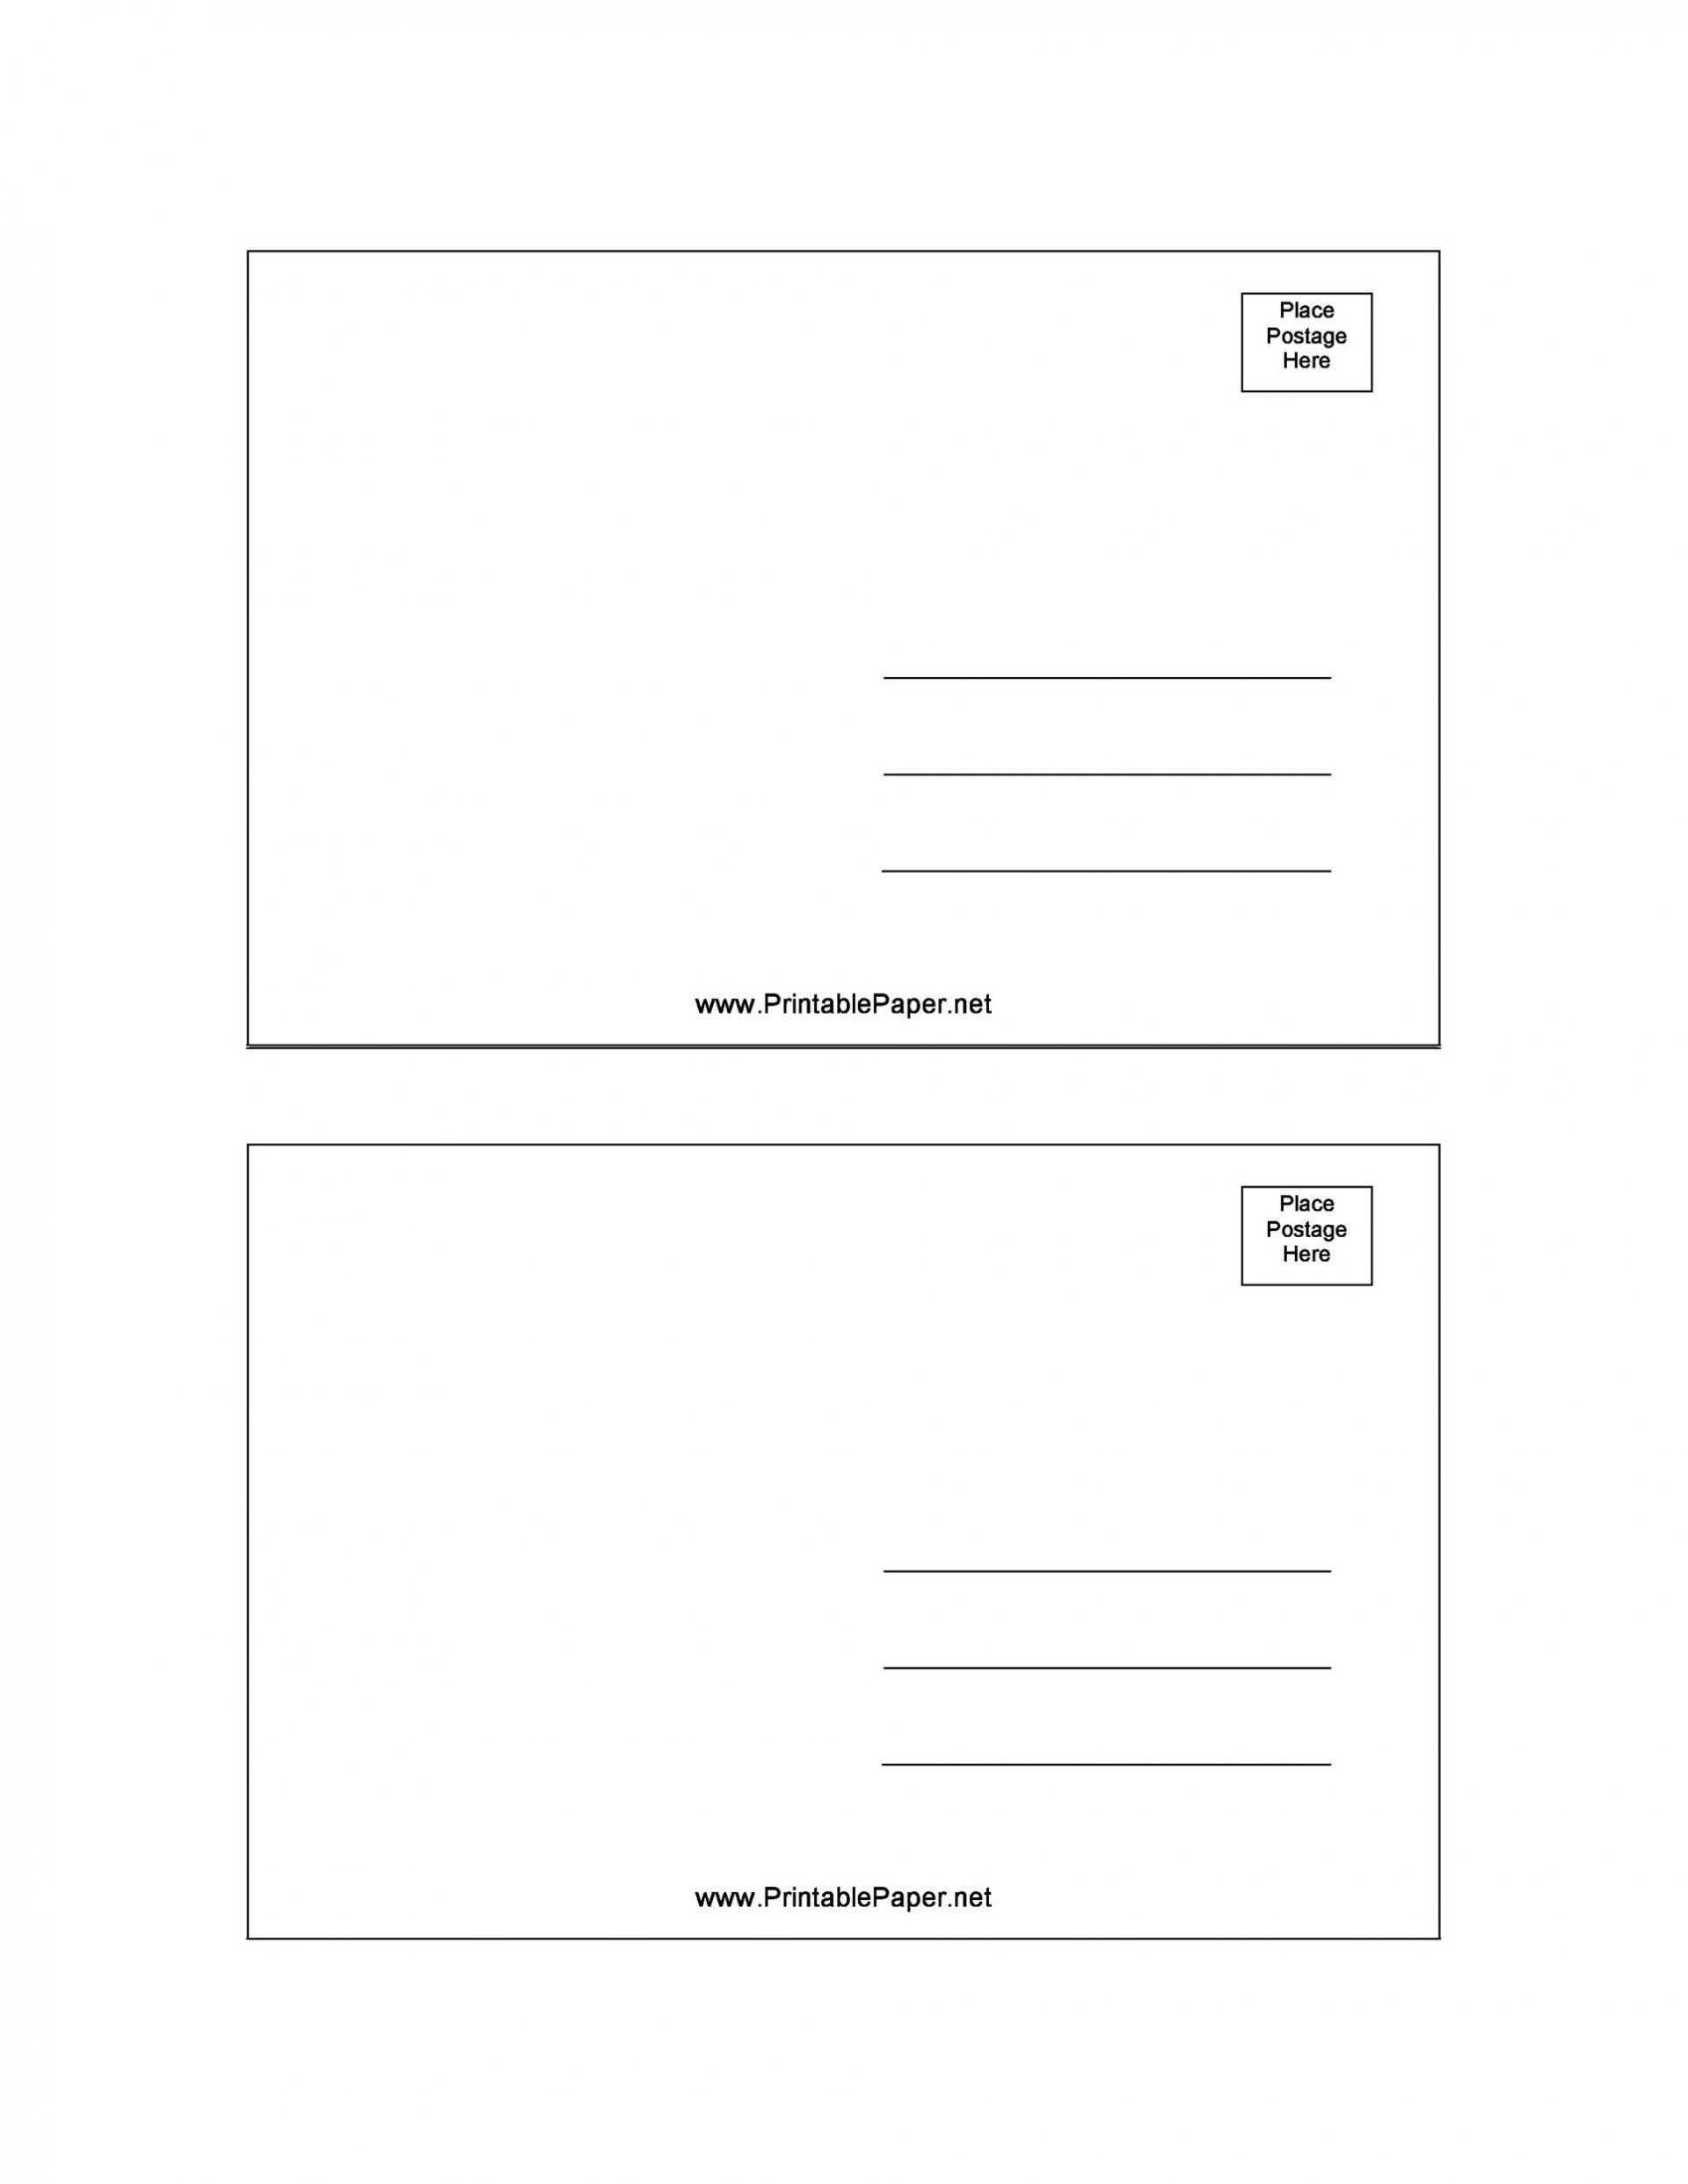 007 Best Postcard Template Download Microsoft Word High Definition 1920